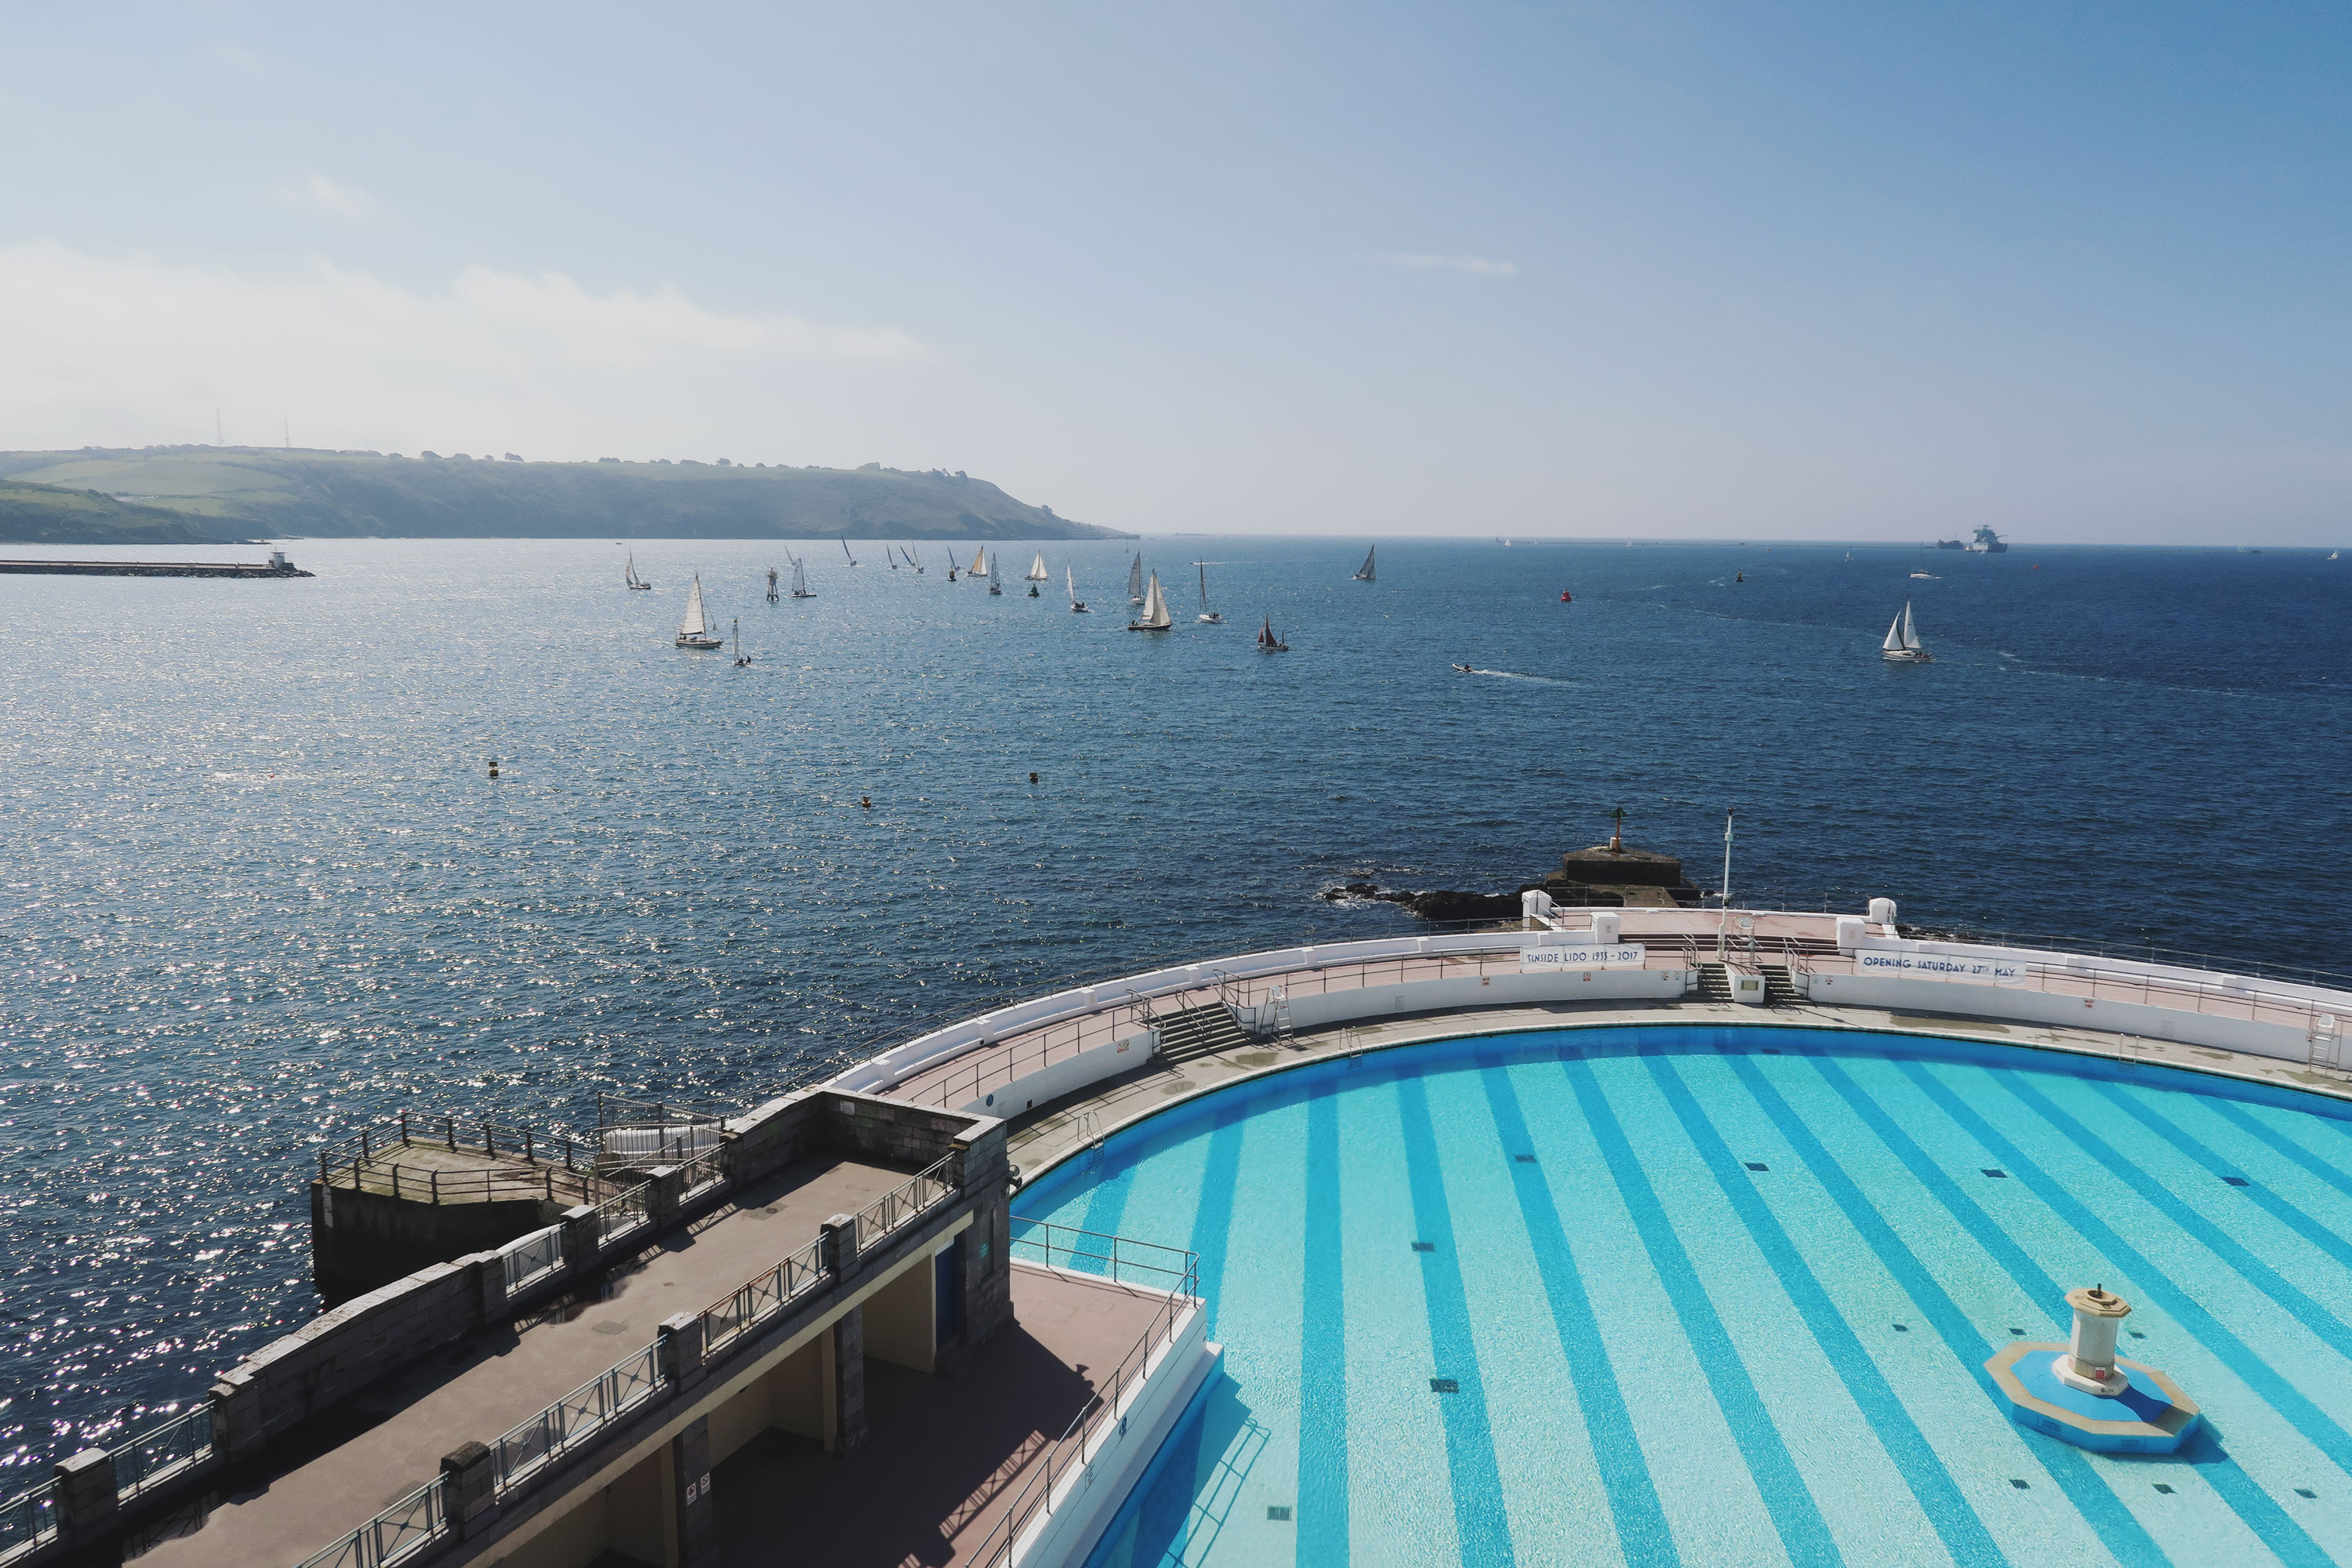 The Lido, Plymouth Hoe